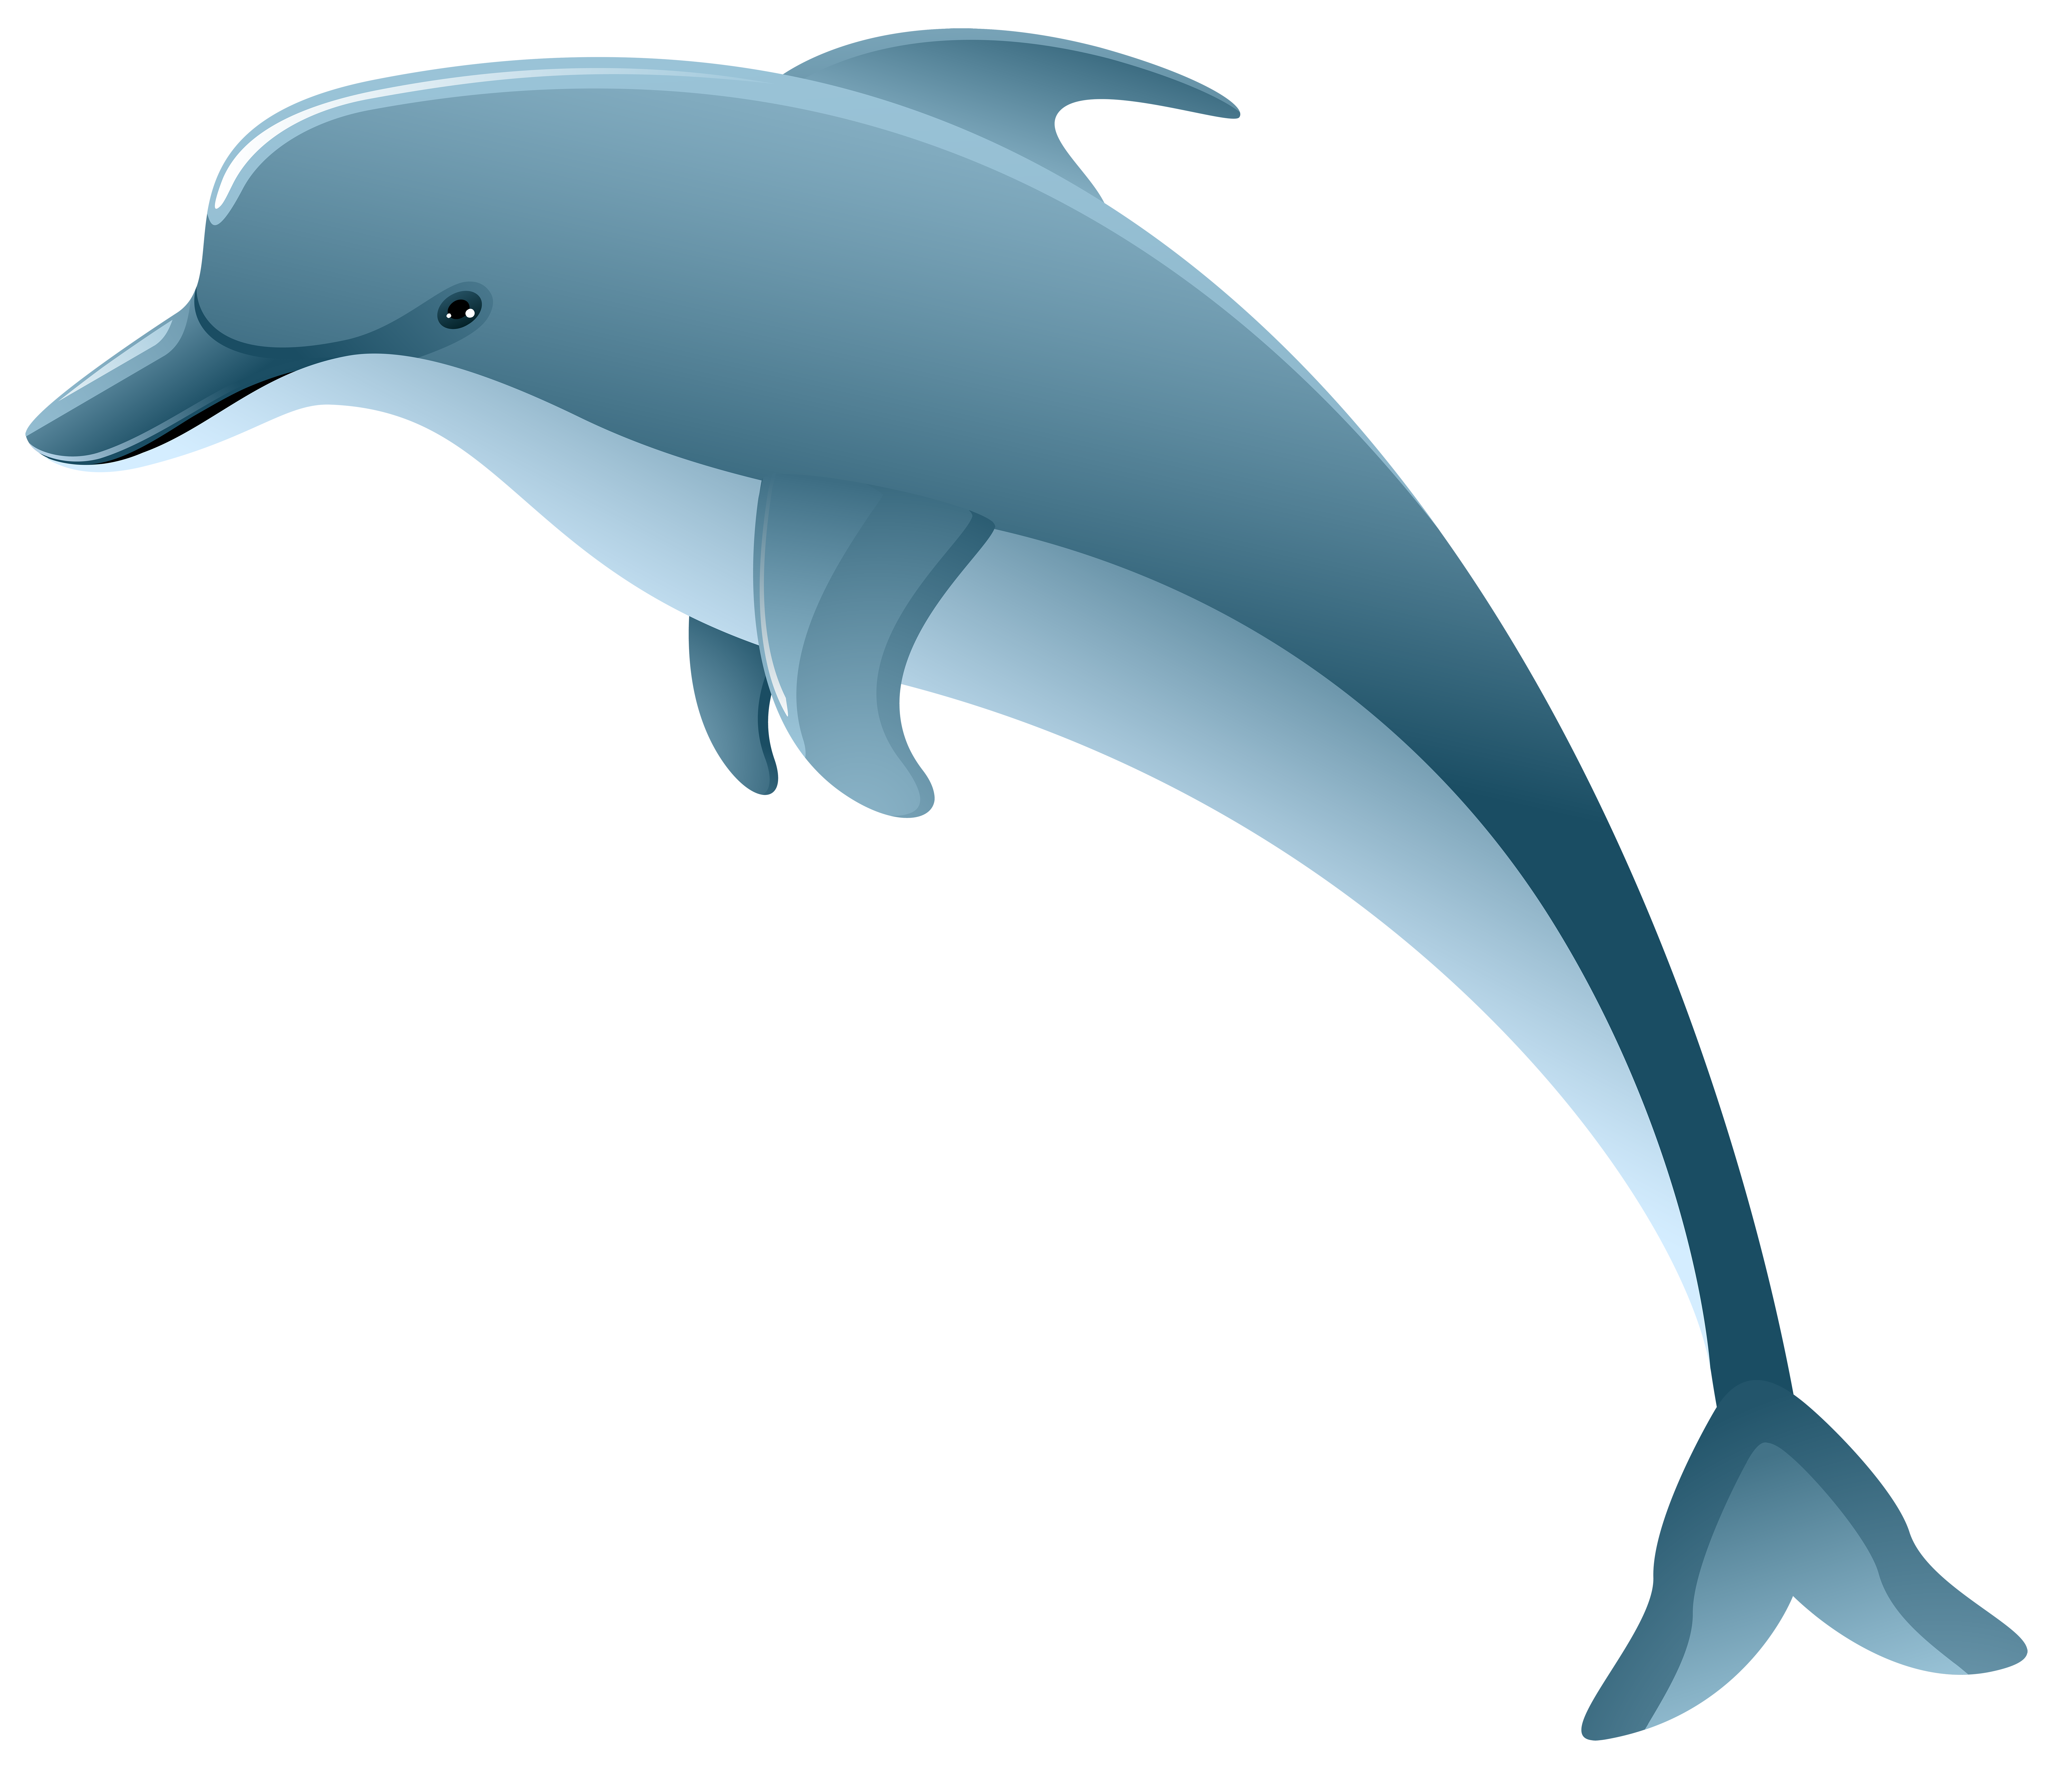 Free Dolphin Clipart at GetDrawings.com.